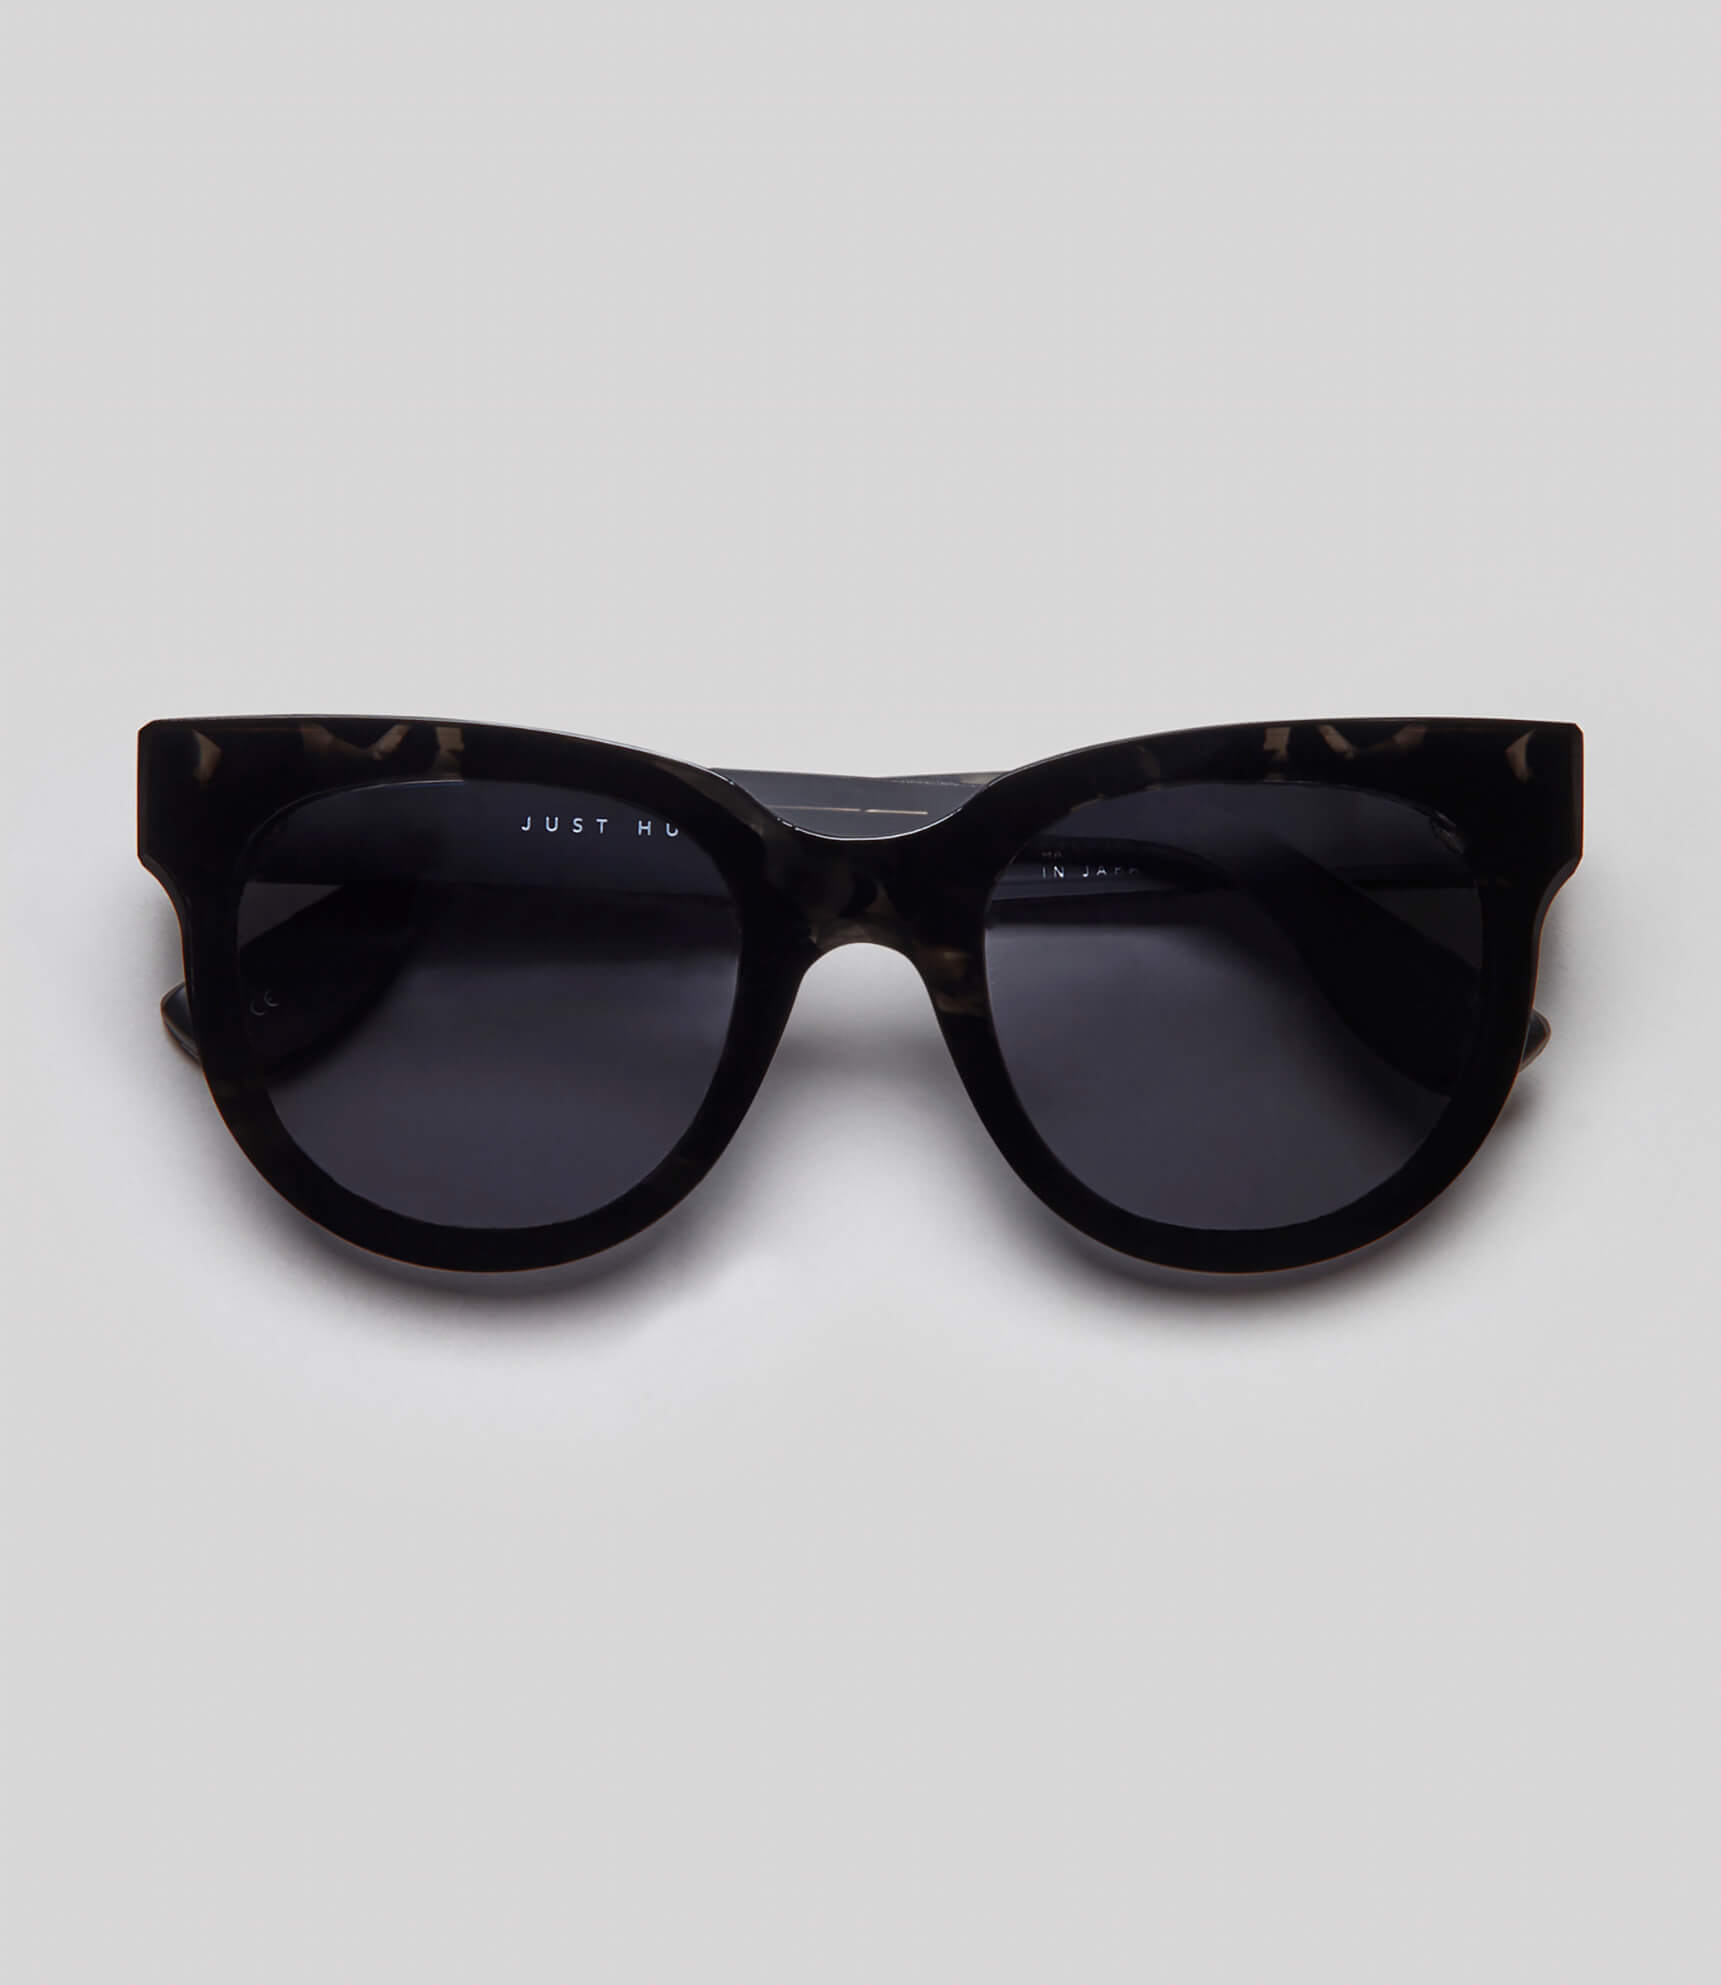 Black tortoise cat eye sunglasses eco friendly sustainable fashion made in Japan unisex sunglasses for men sunglasses for women and blue light filter